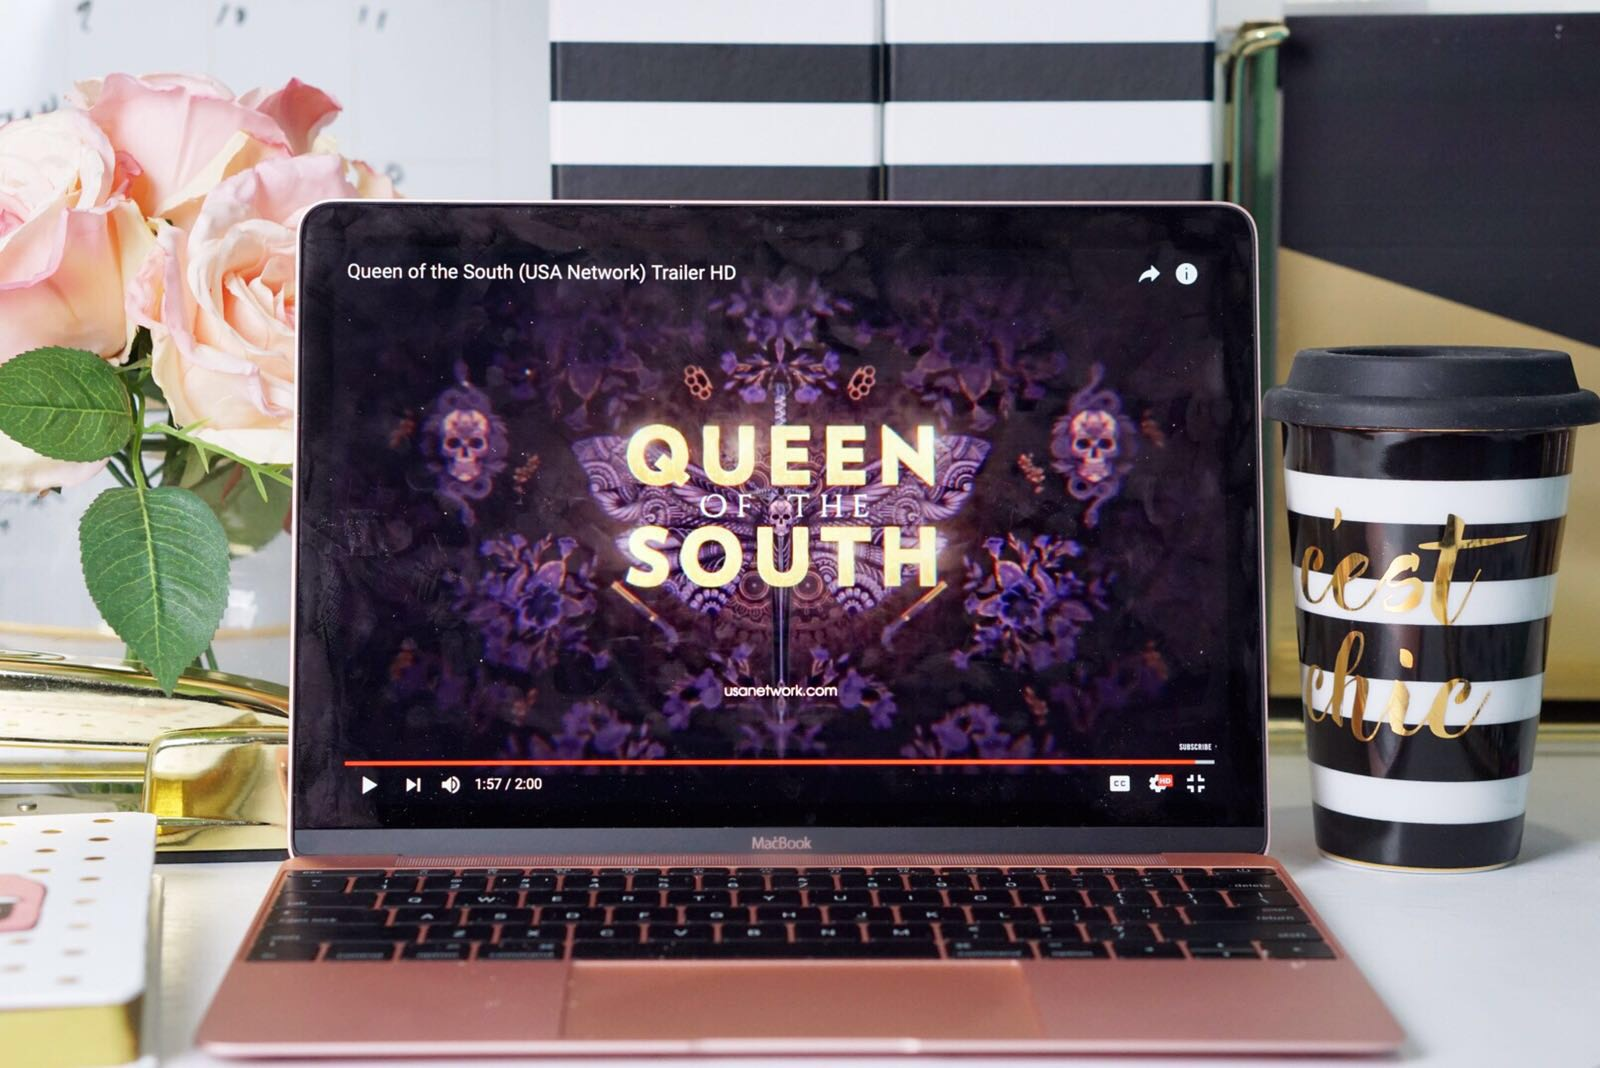 Queen of the South on the USA Network